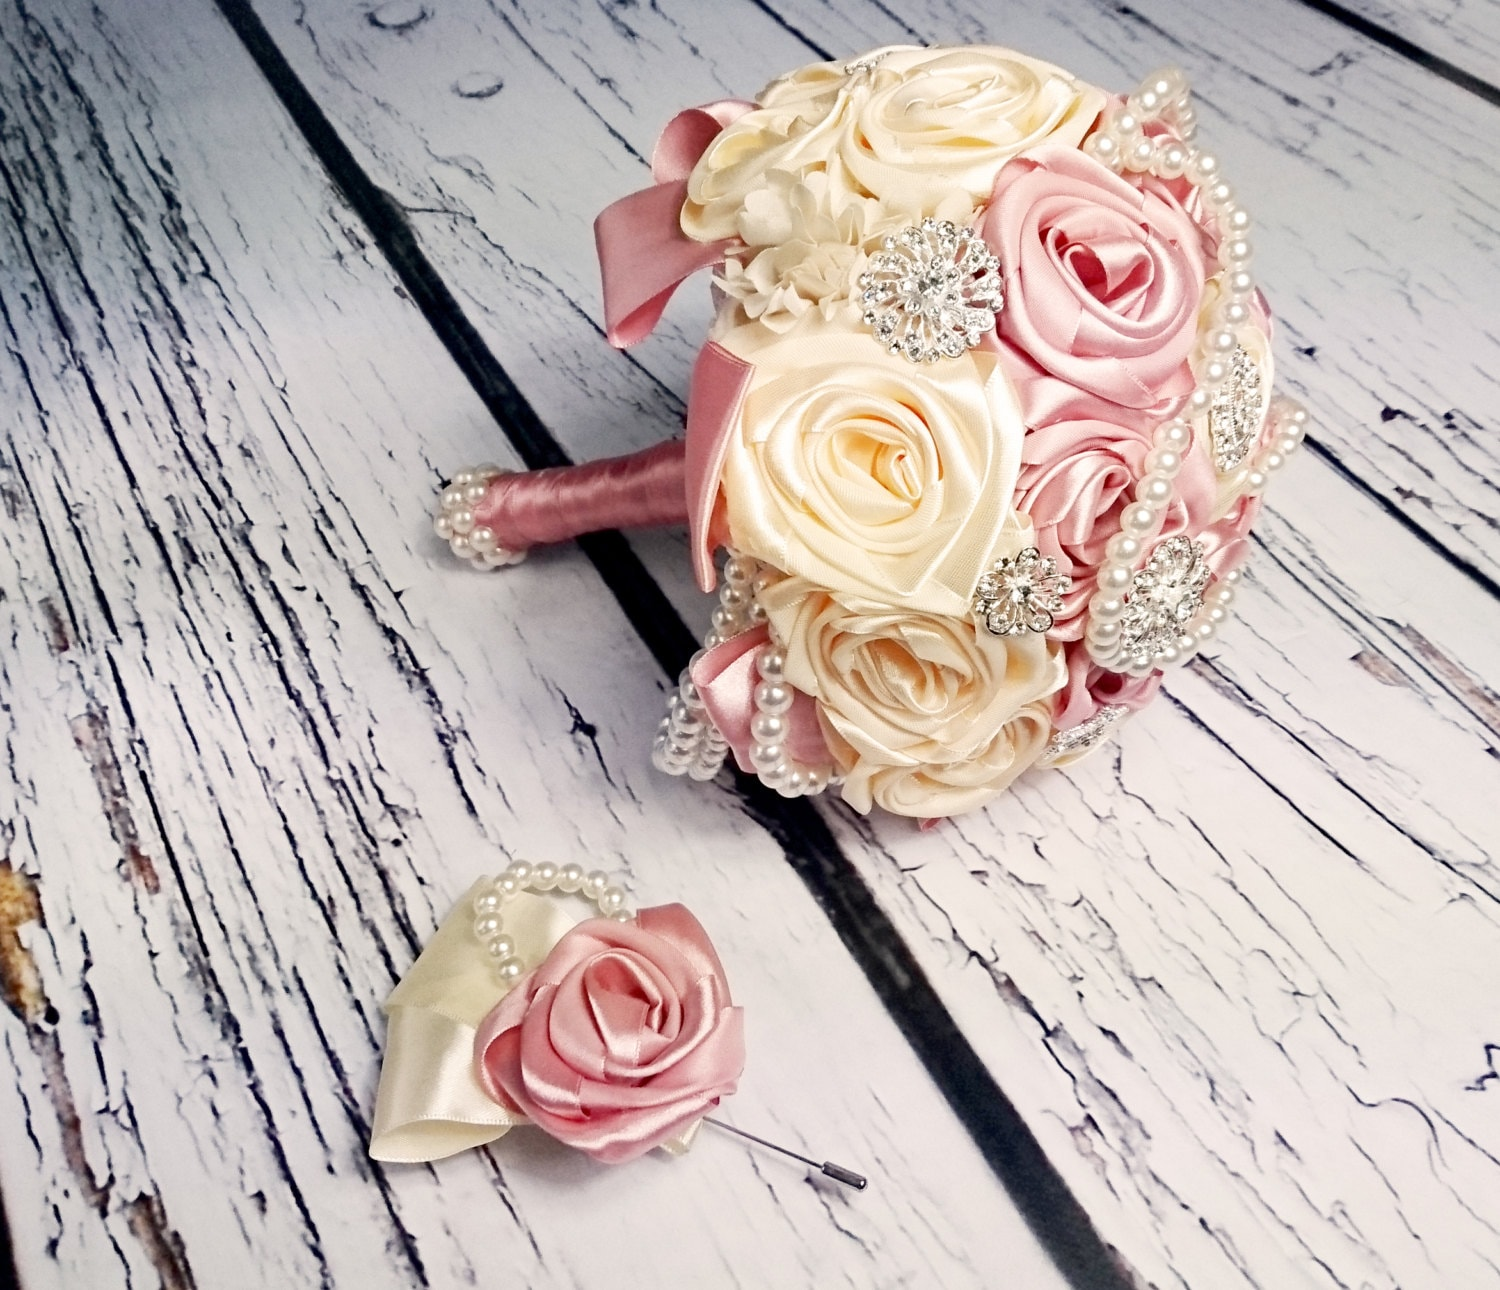 Satin ribbon flowers wedding BOUQUET dusky pink ivory creme pearls ...